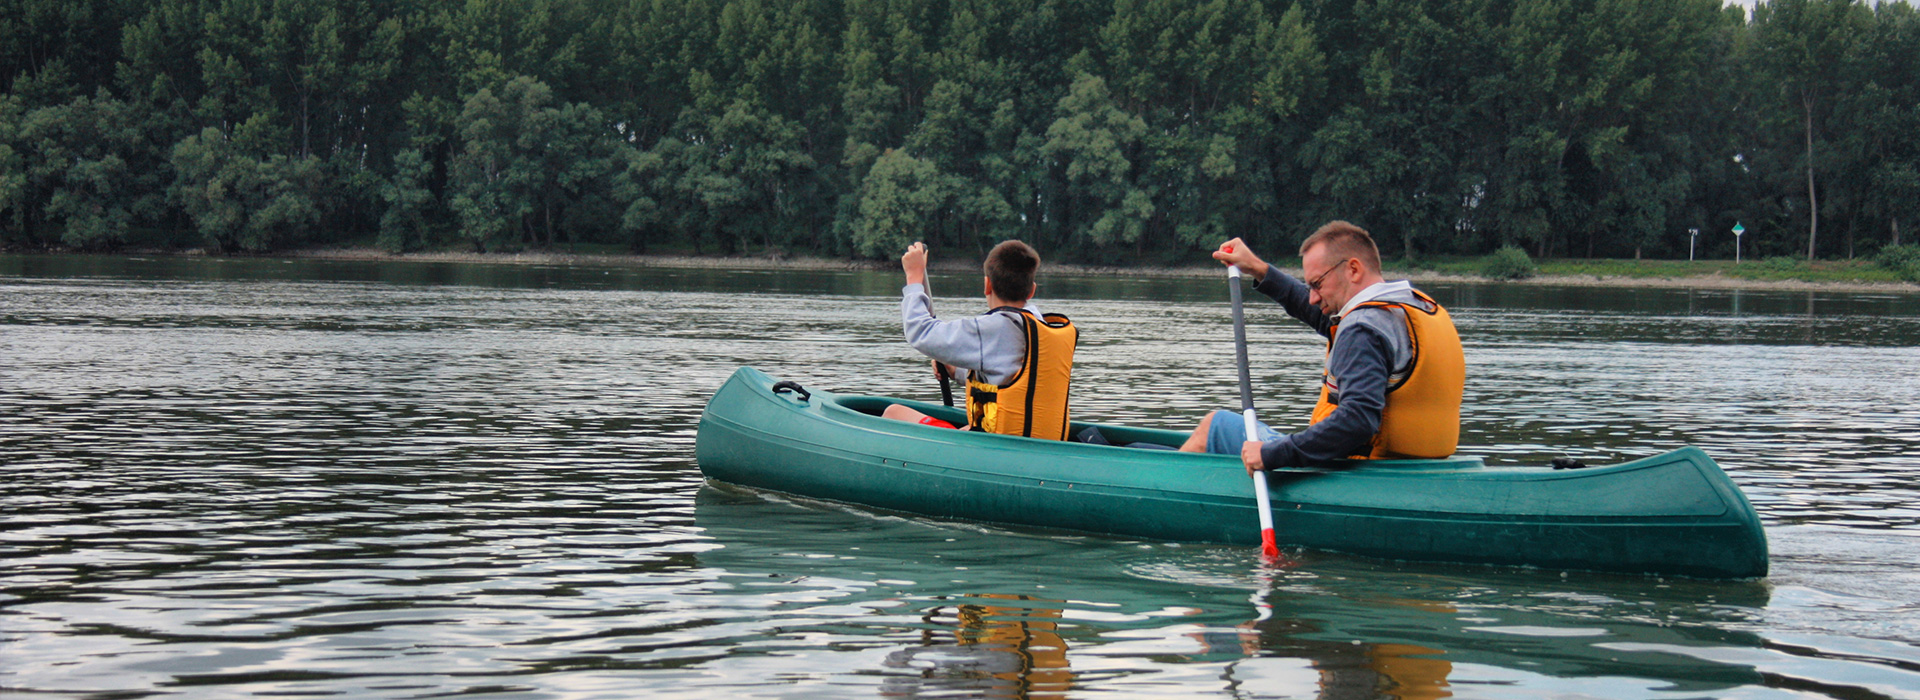 Canoeing on the Danube